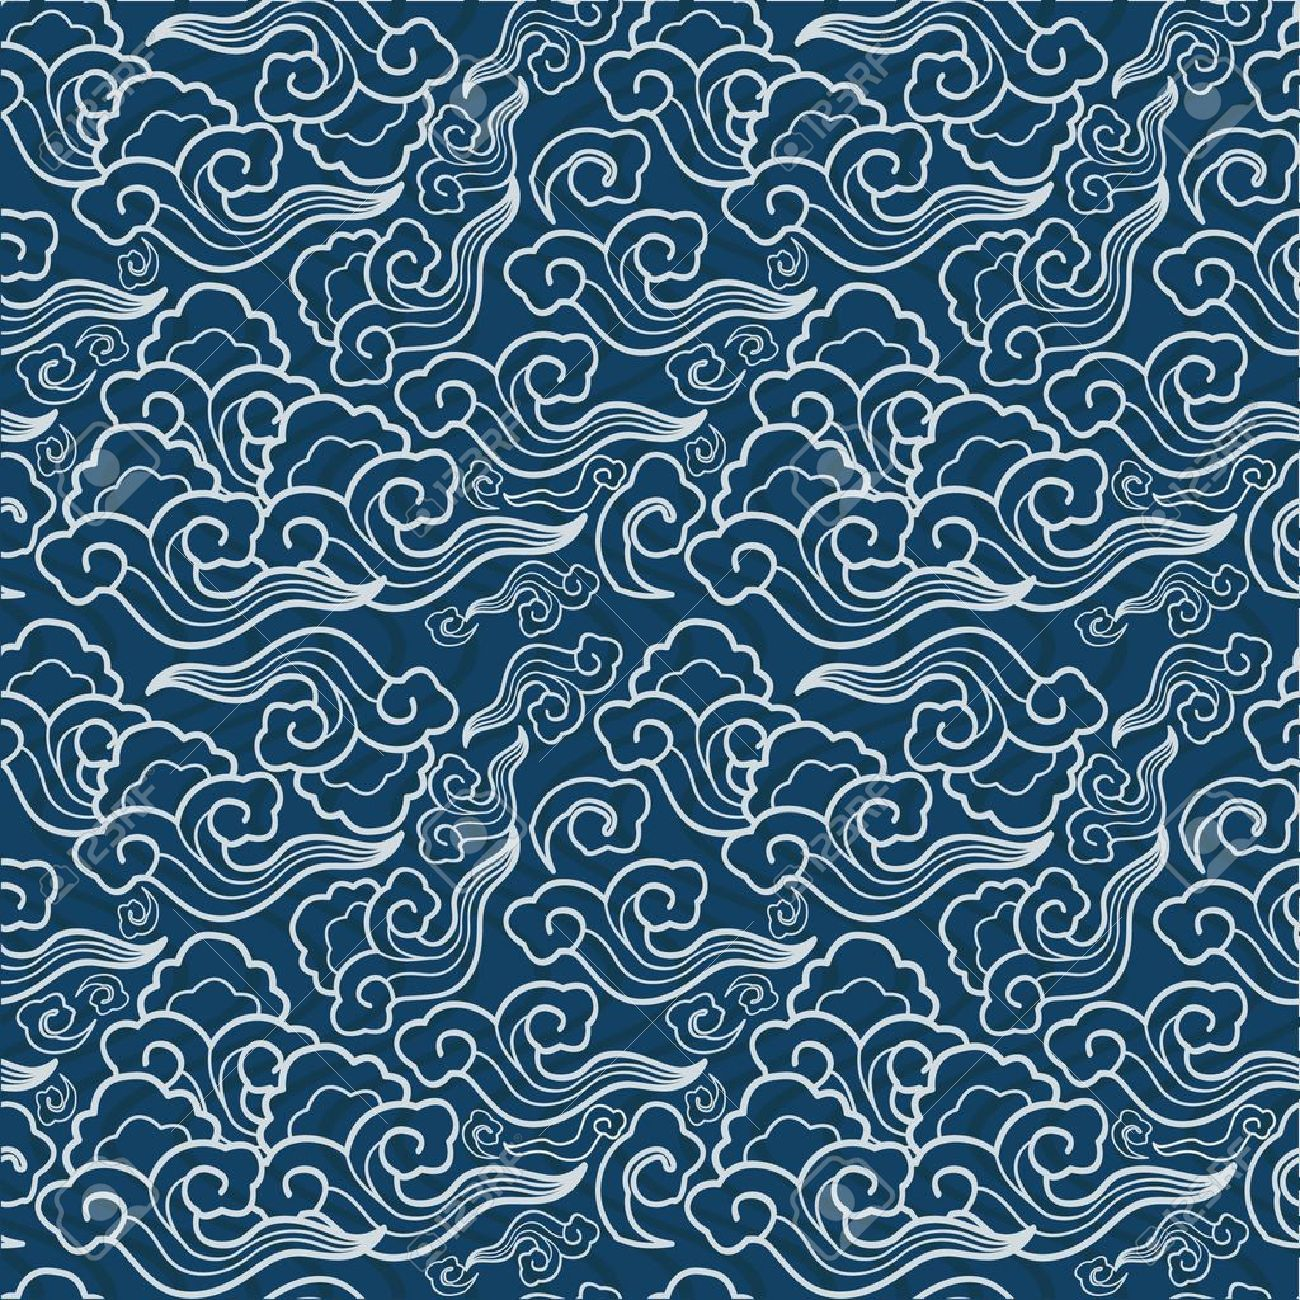 1300x1300 Traditional Japanese Seamless Patterns With Geometric And Nature